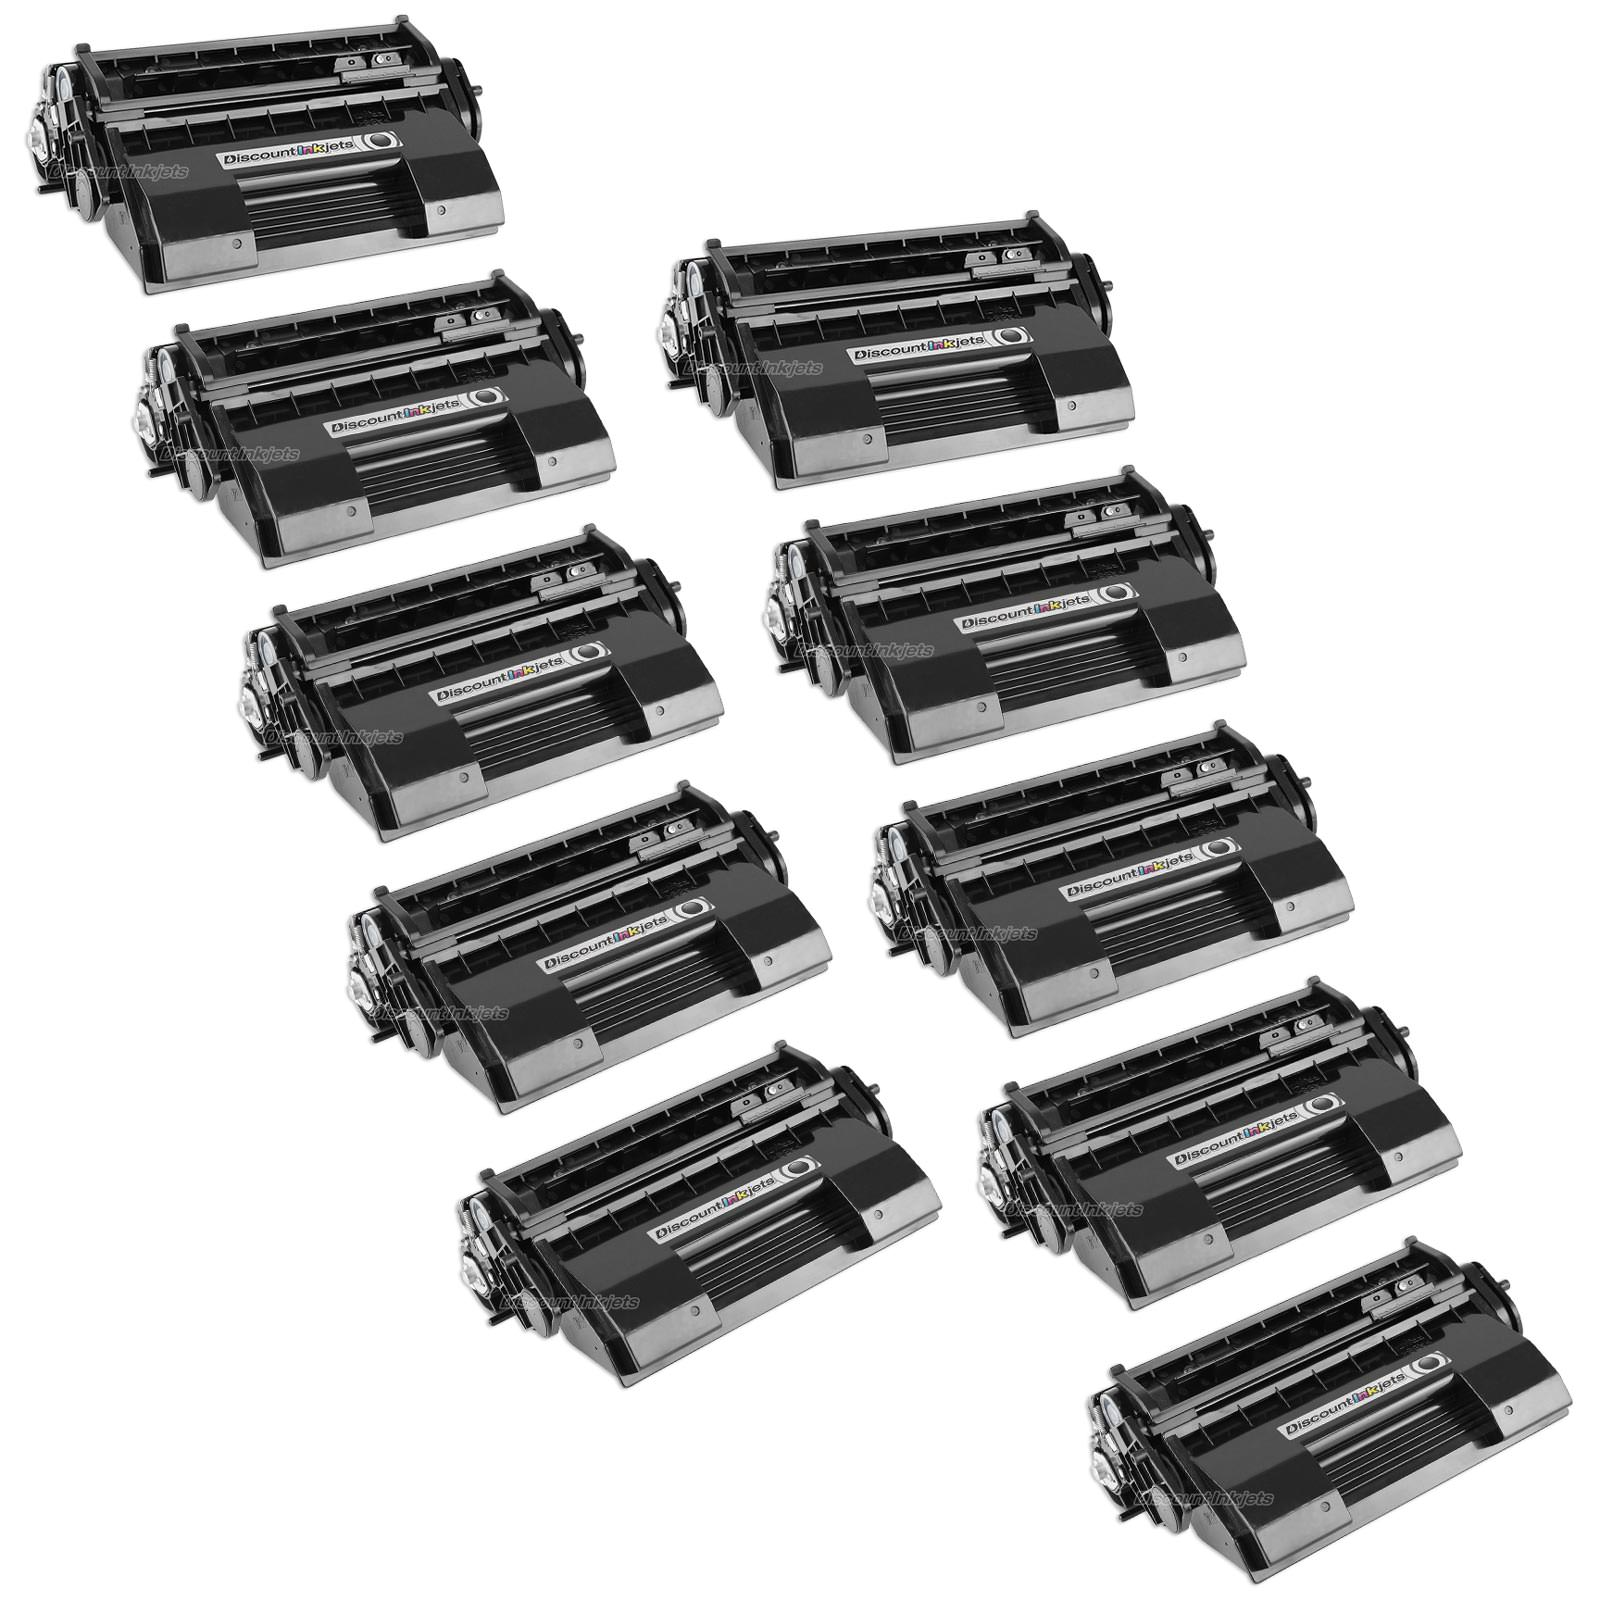 52114501 Okidata Black Printer Laser Toner Cartridge for Oki B6200 B6250 B6300